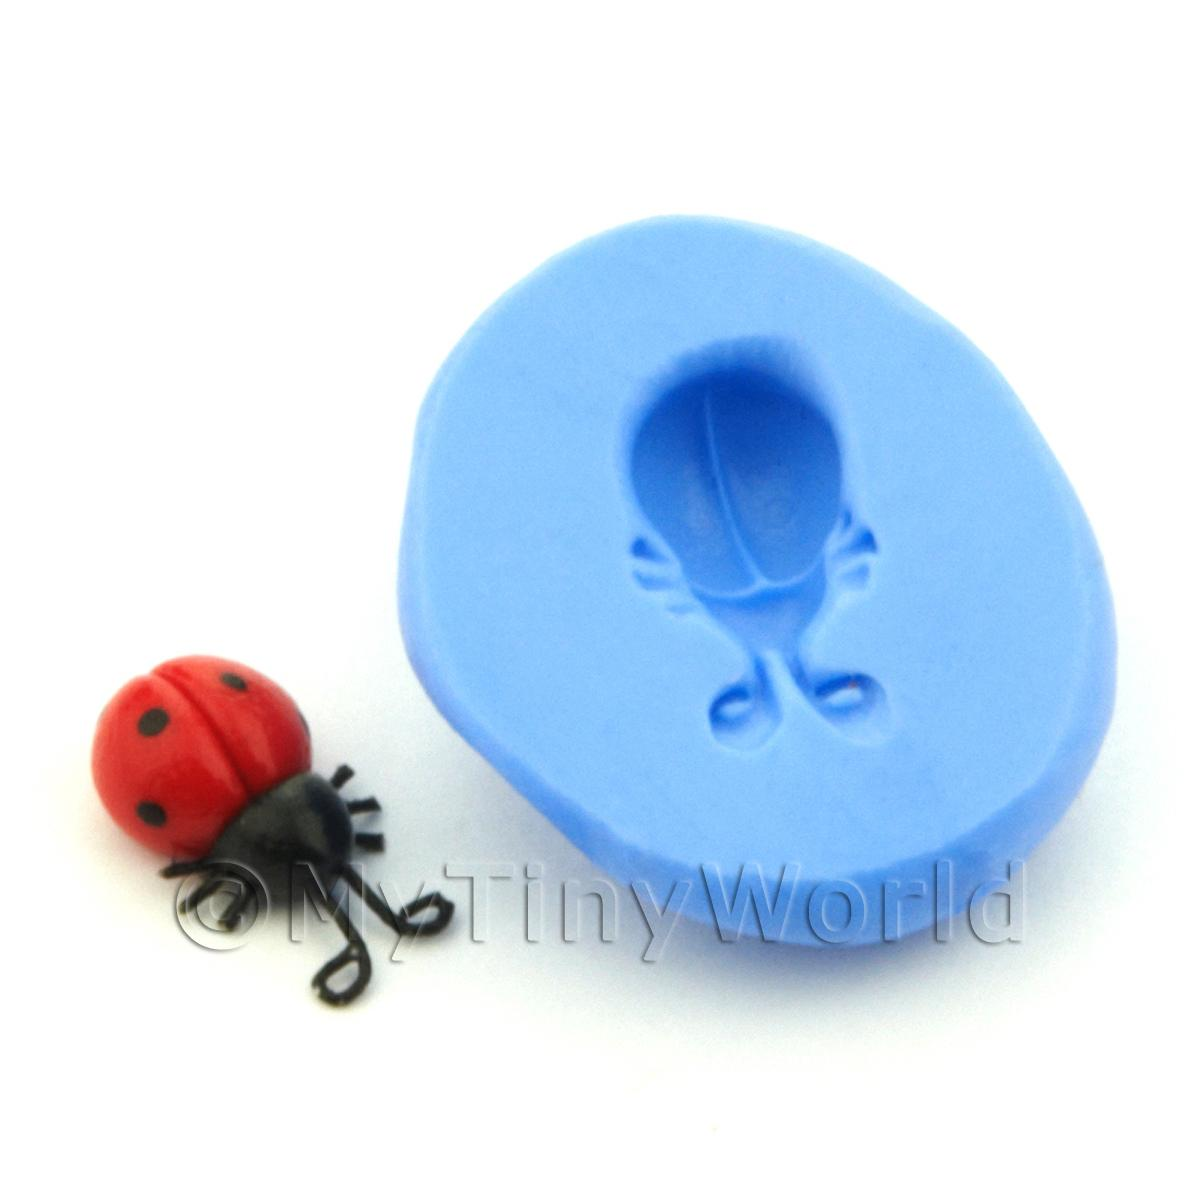 Dolls House Miniature Ladybird Silicone Mould